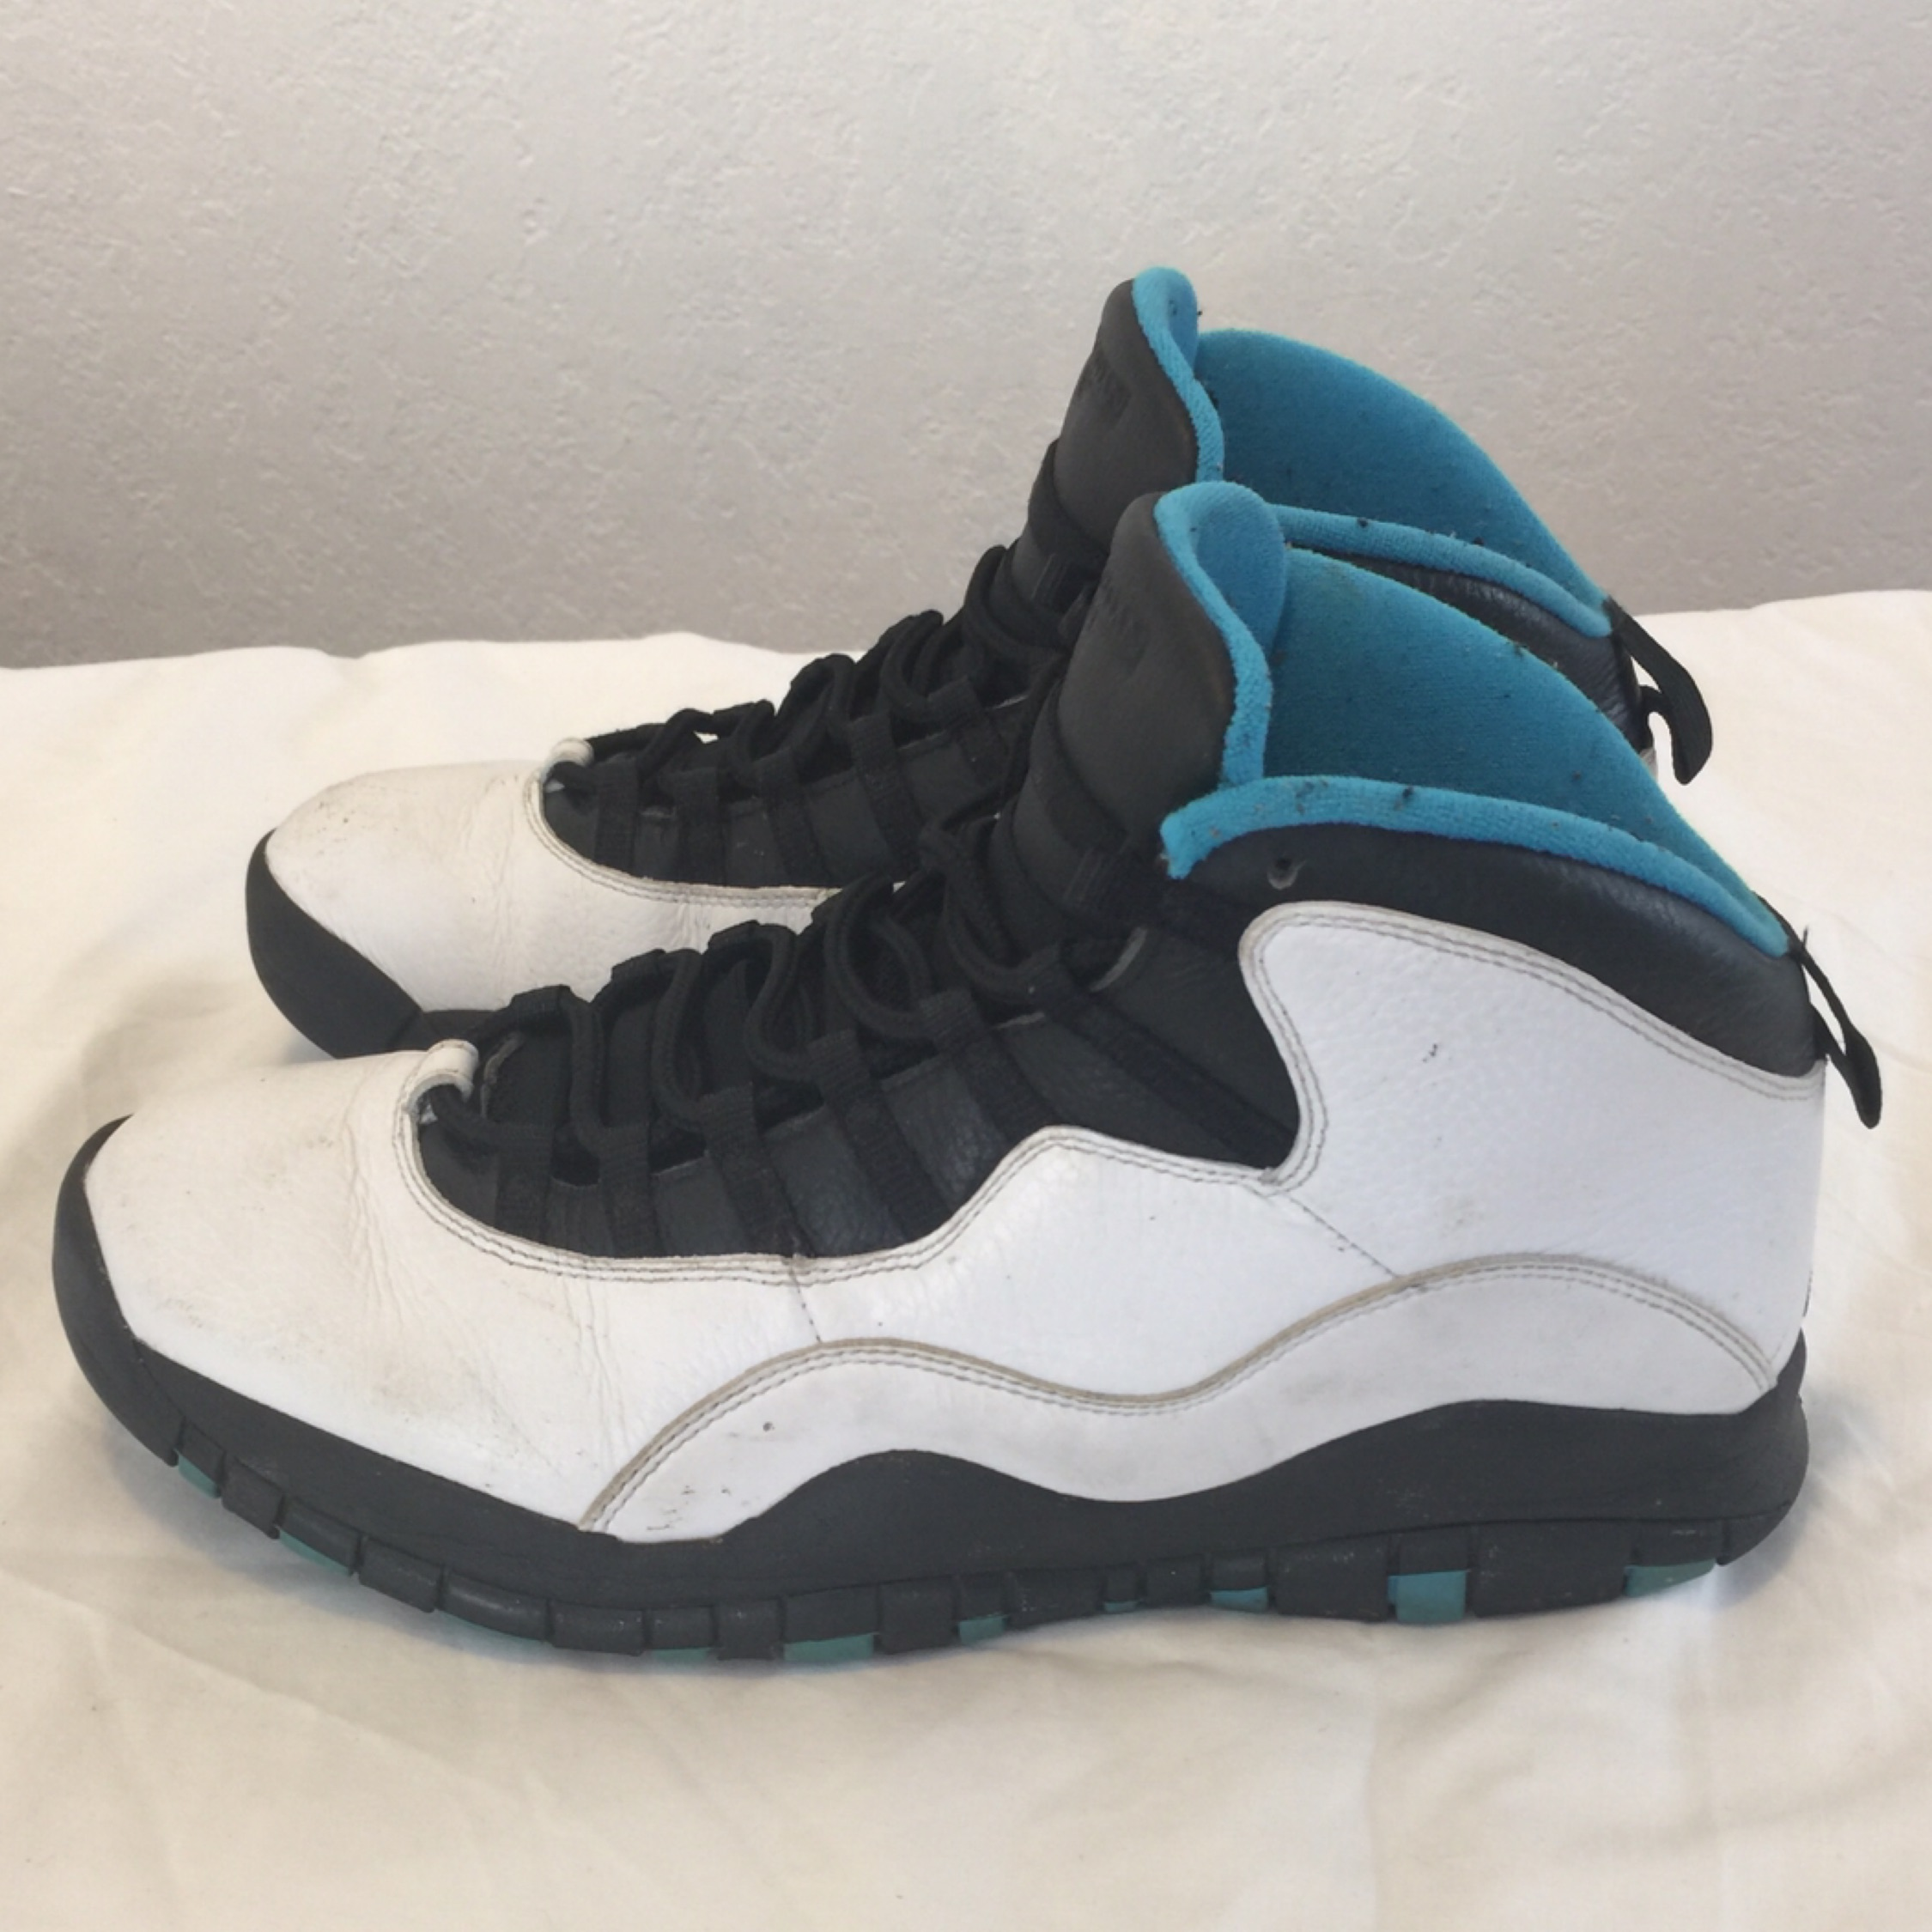 separation shoes e9cfe 74352 Air Jordan Retro 10 - Powder Blue - Sz 12